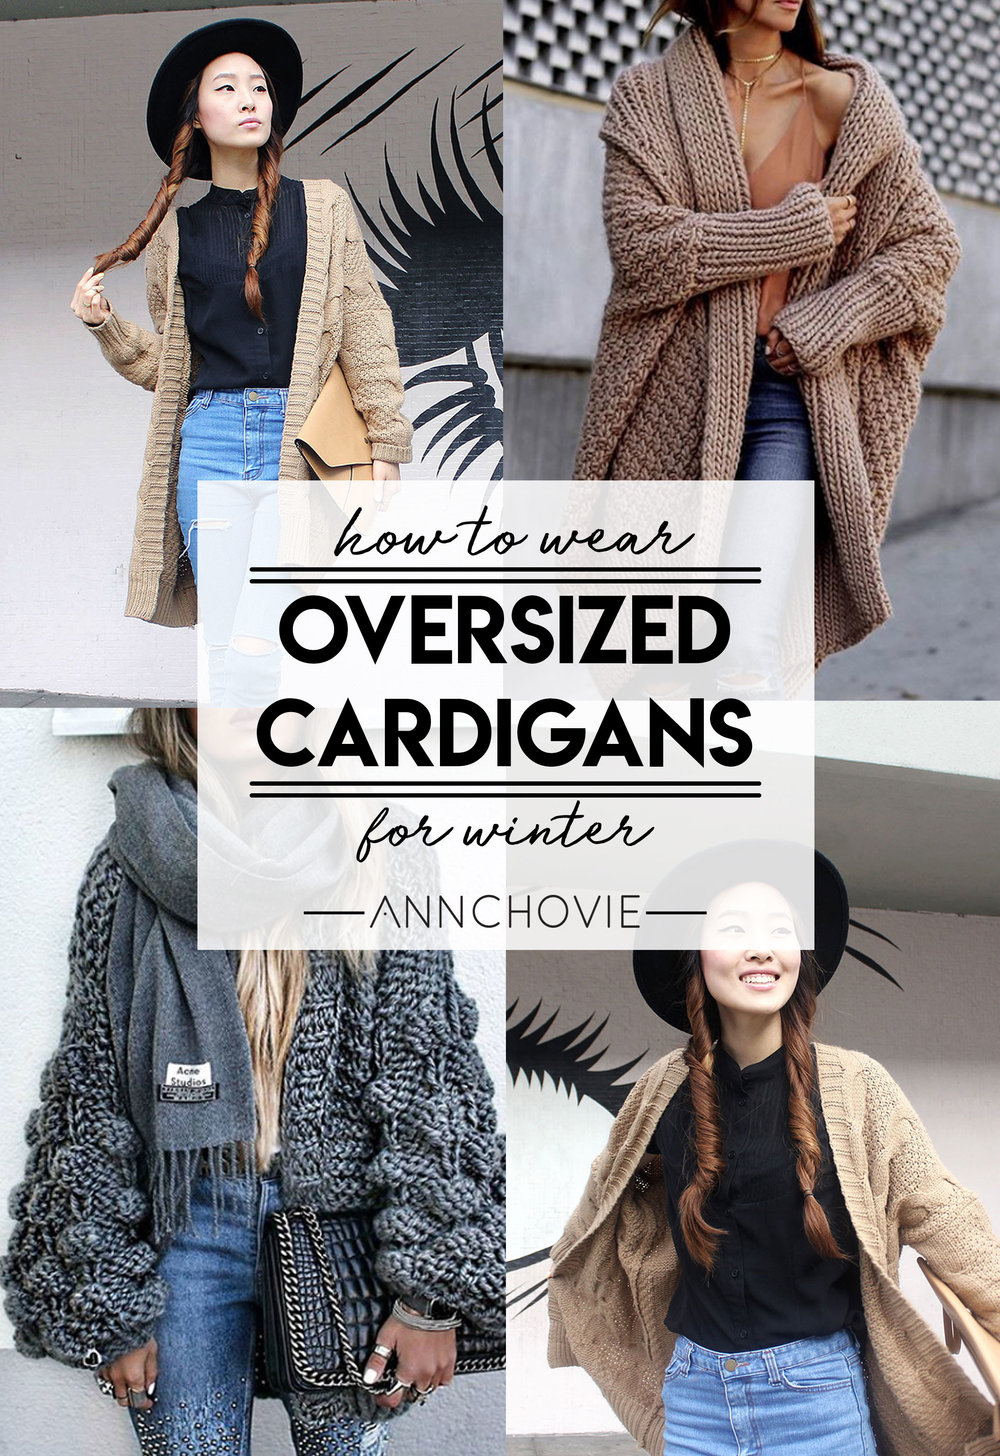 how-to-wear-an-oversized-cardigan-this-winter-O.jpg